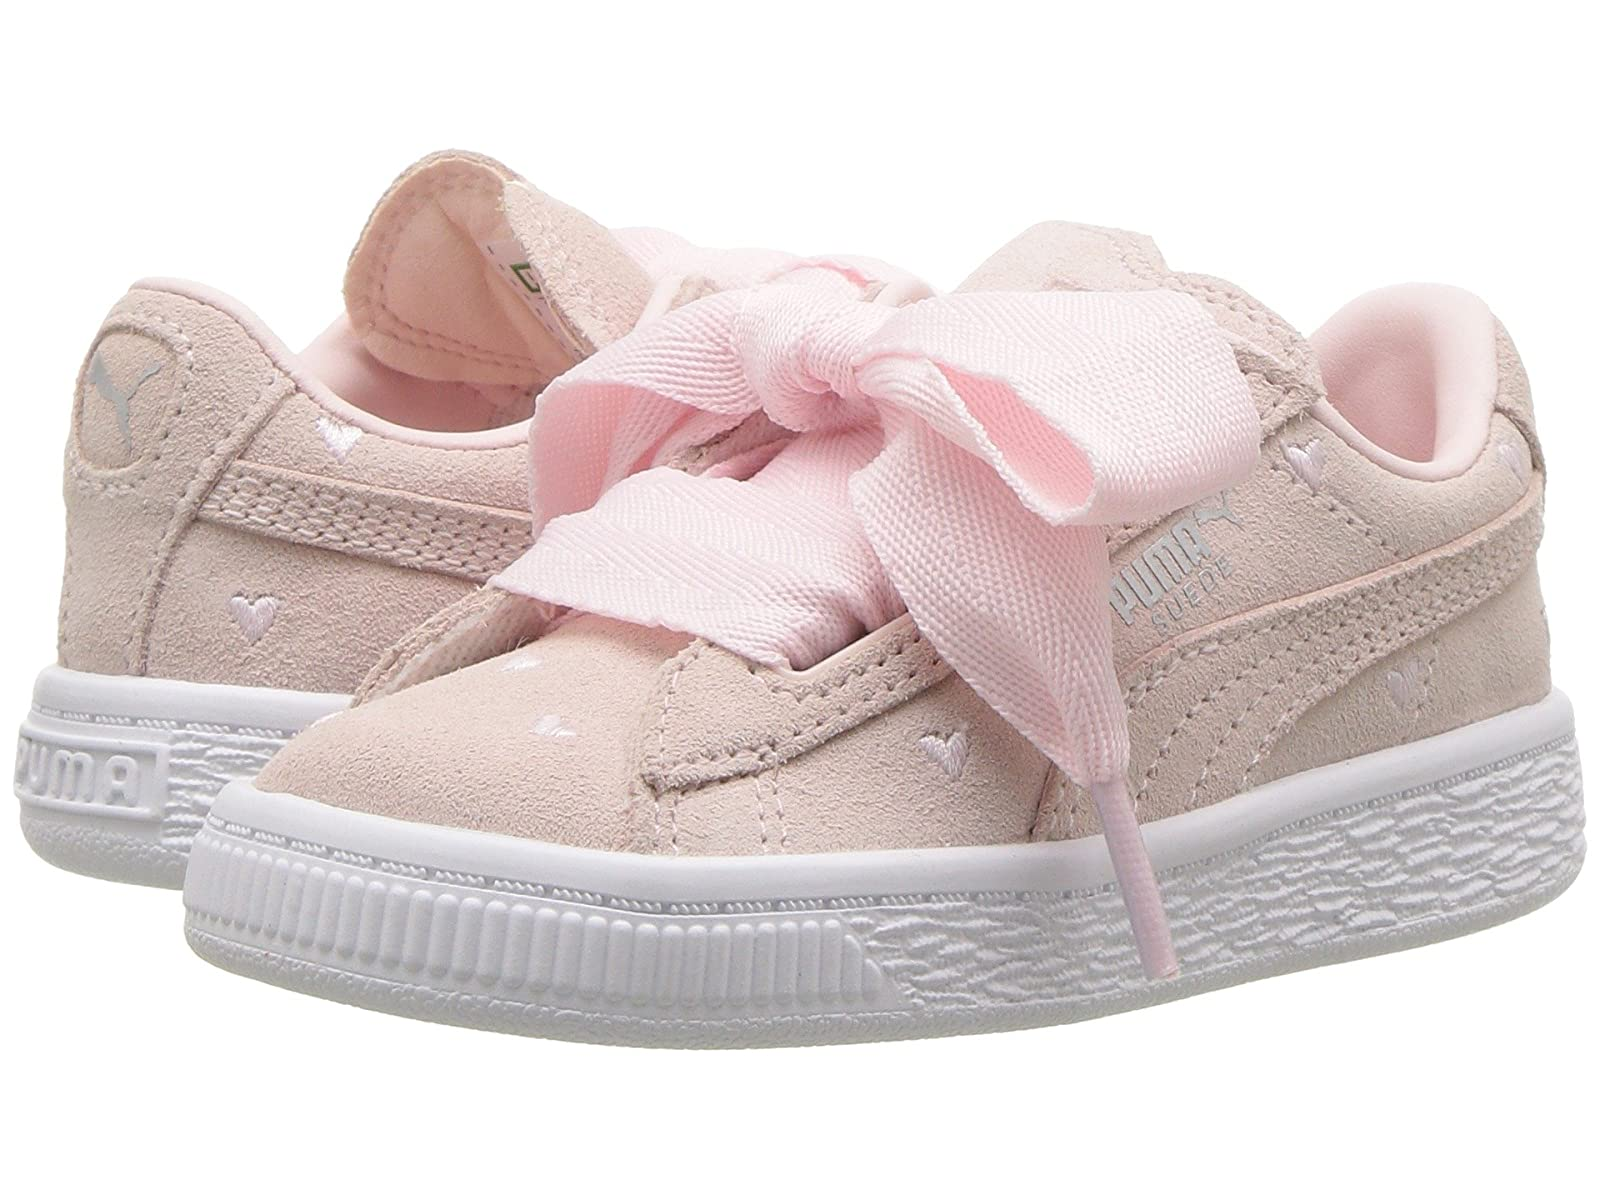 Puma Kids Suede Heart Valentine (Toddler)Cheap and distinctive eye-catching shoes